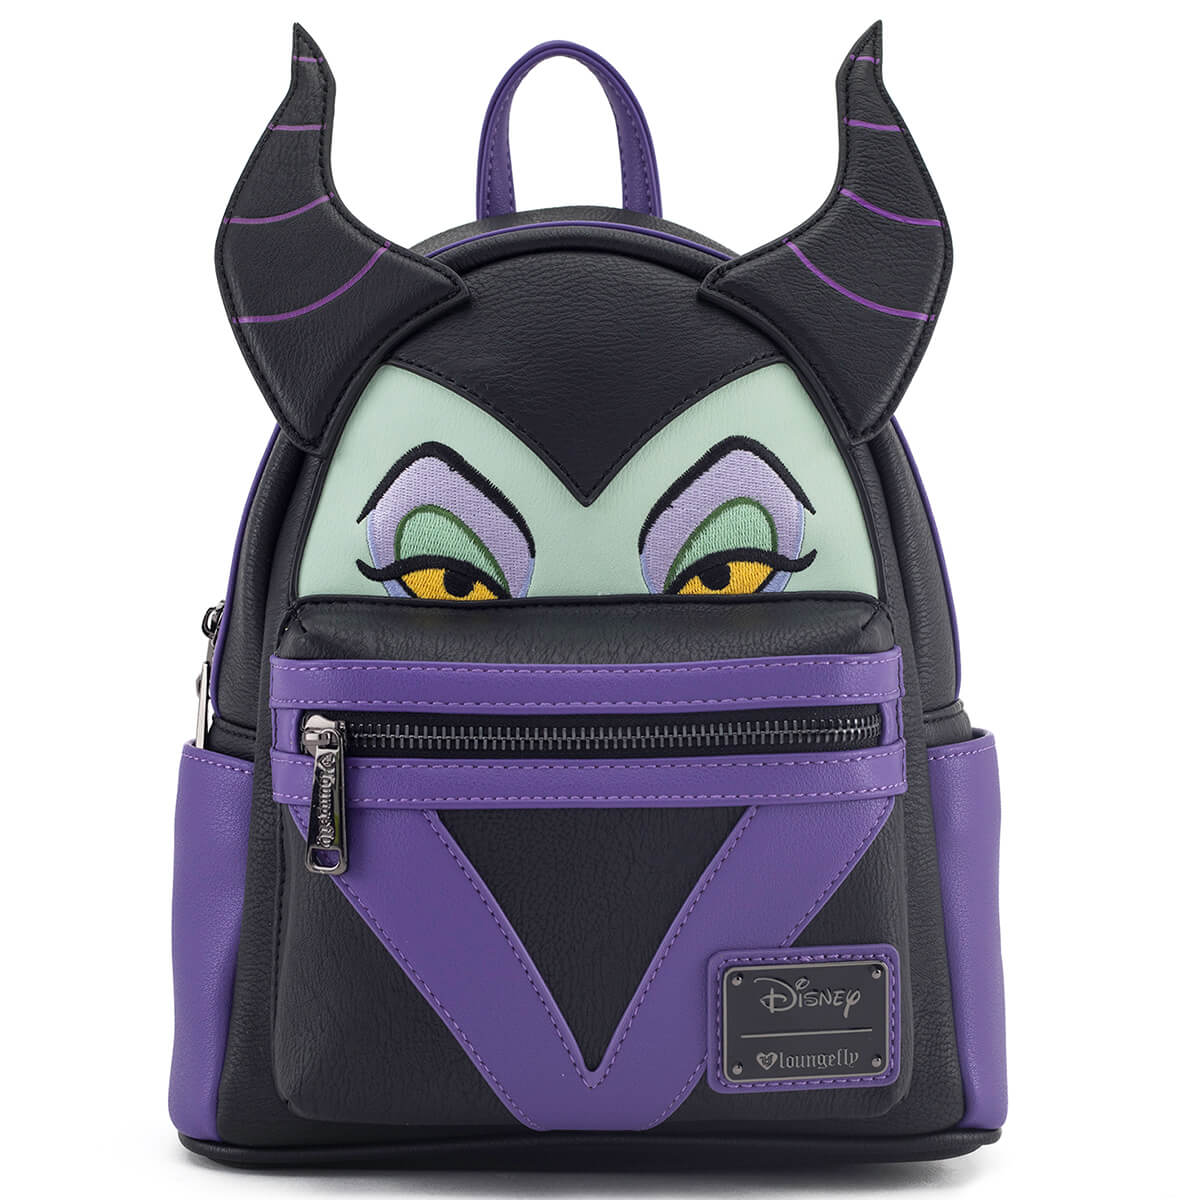 Loungefly Disney Maleficent Face Mini Backpack